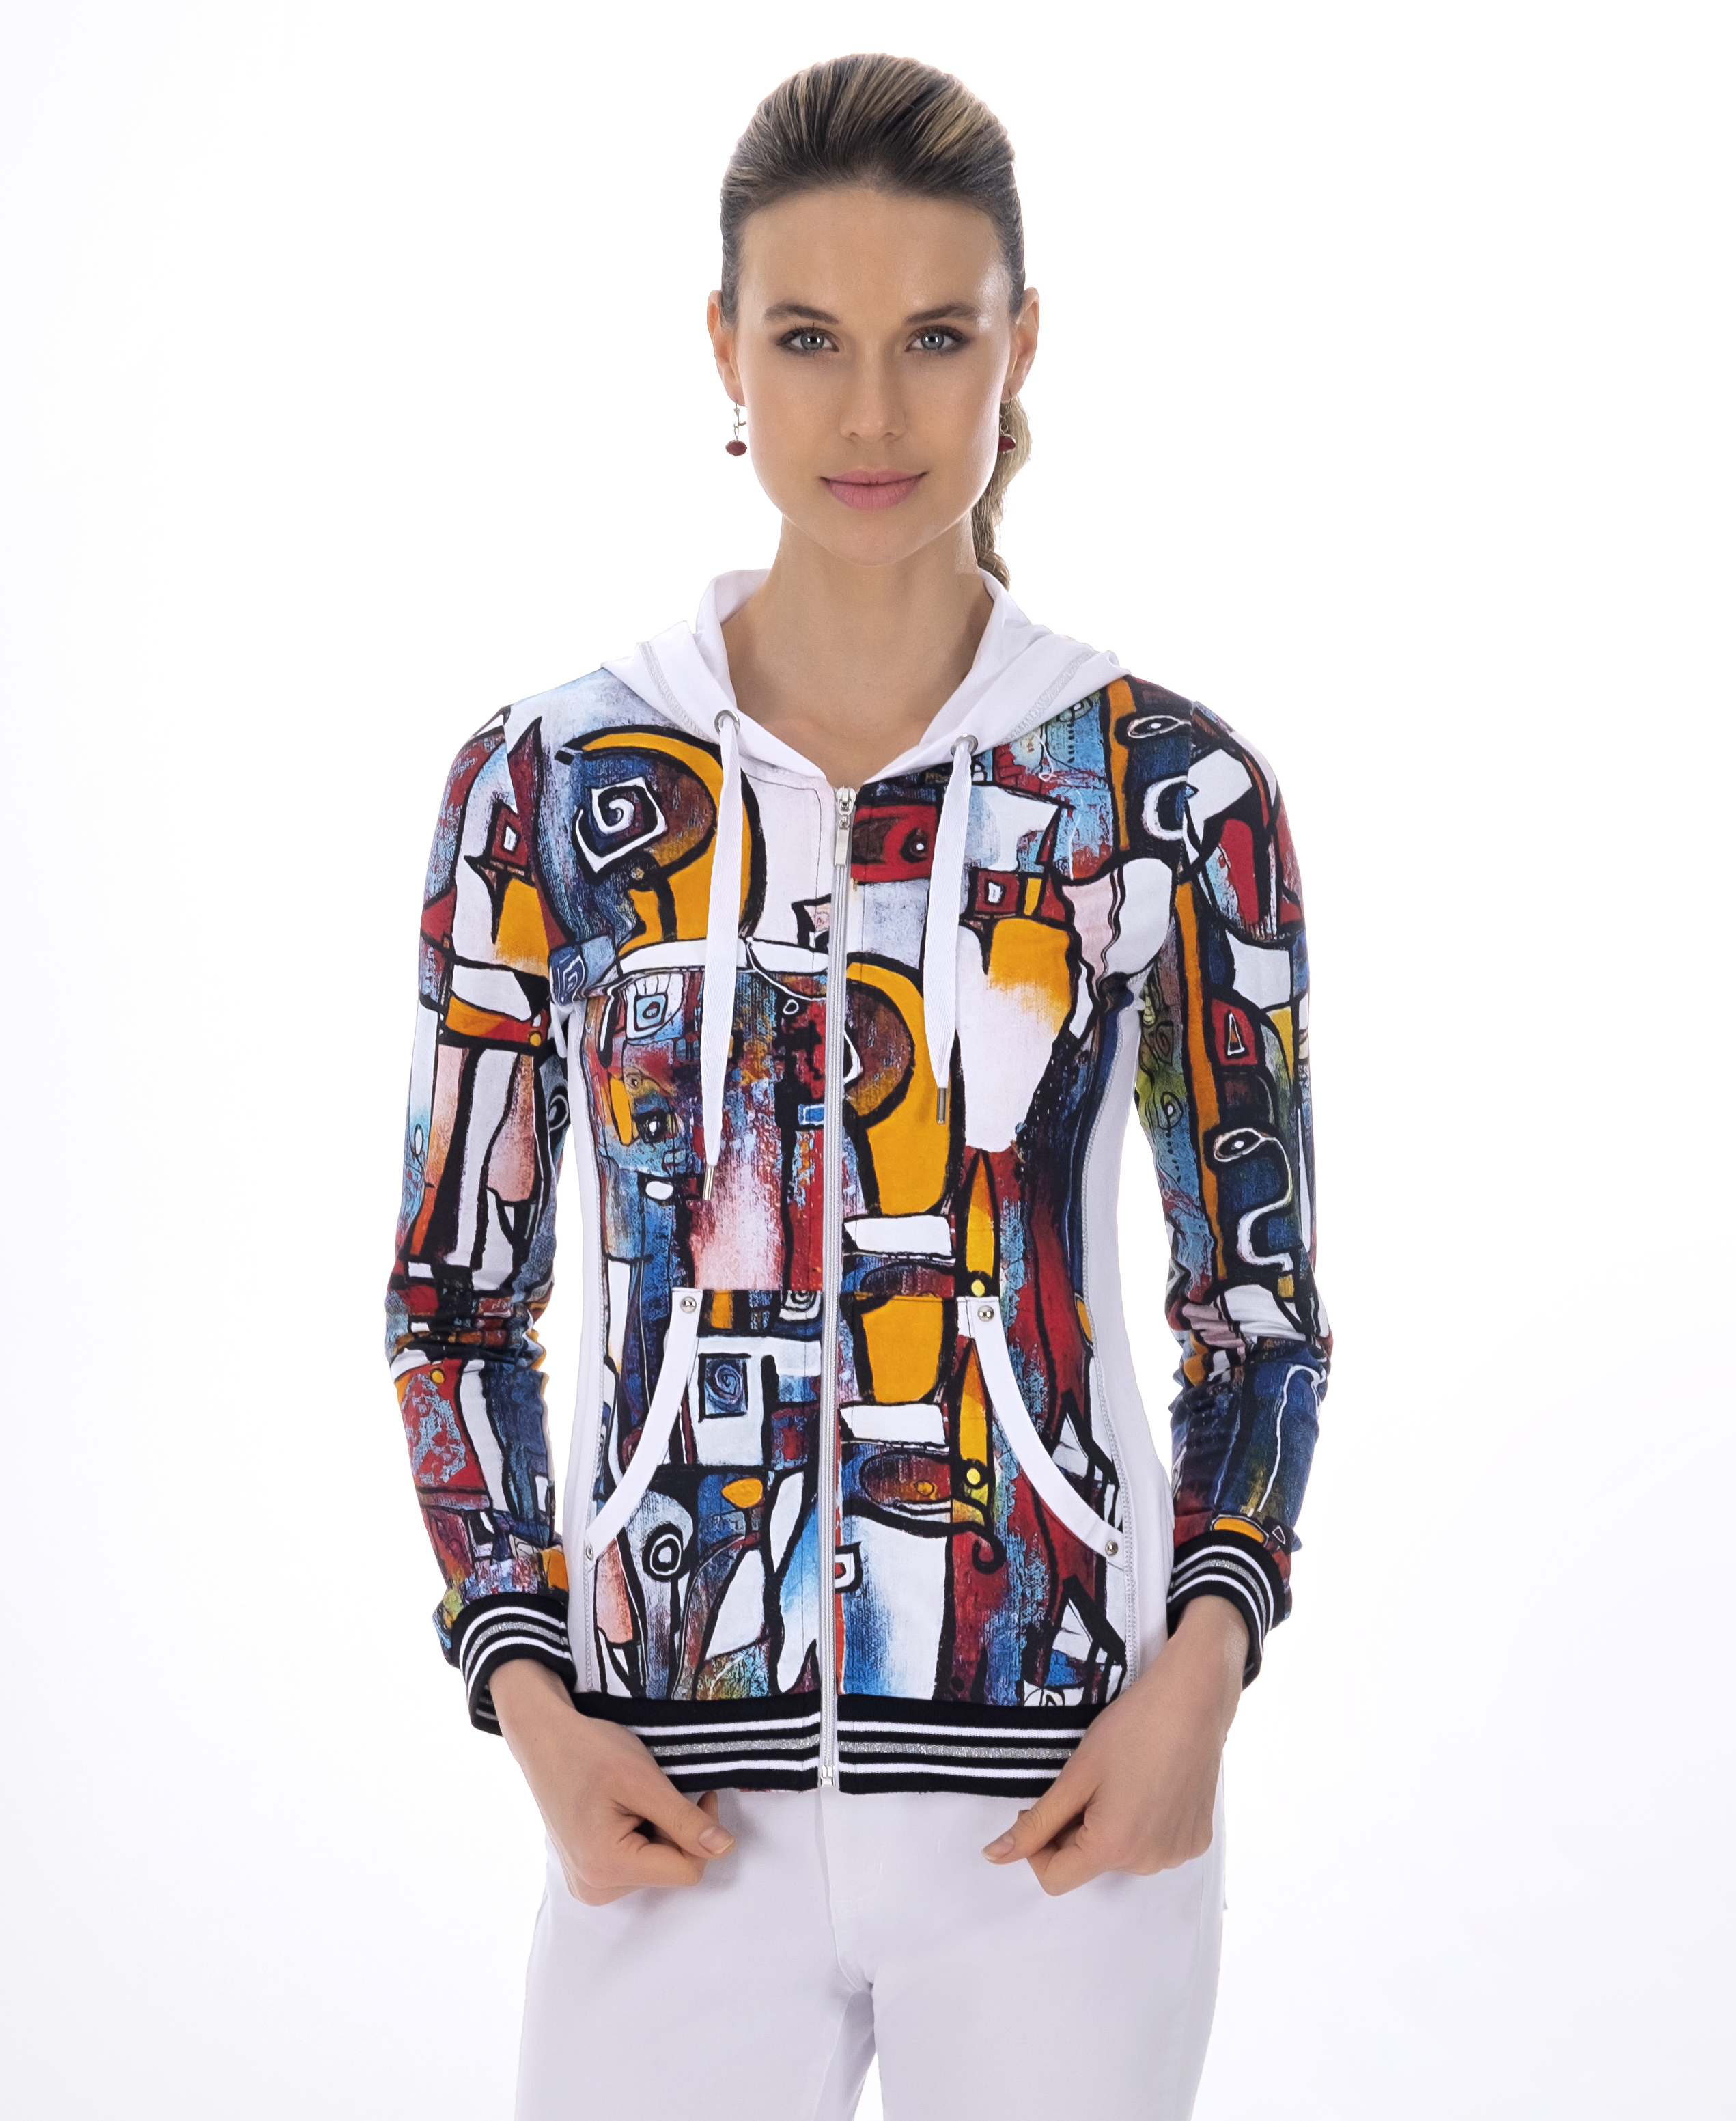 Simply Art Dolcezza: It's Complicated Crazy Cool Abstract Art Zip Up Hoodie (1 Left!) DOLCEZZA_SIMPLYART_21713